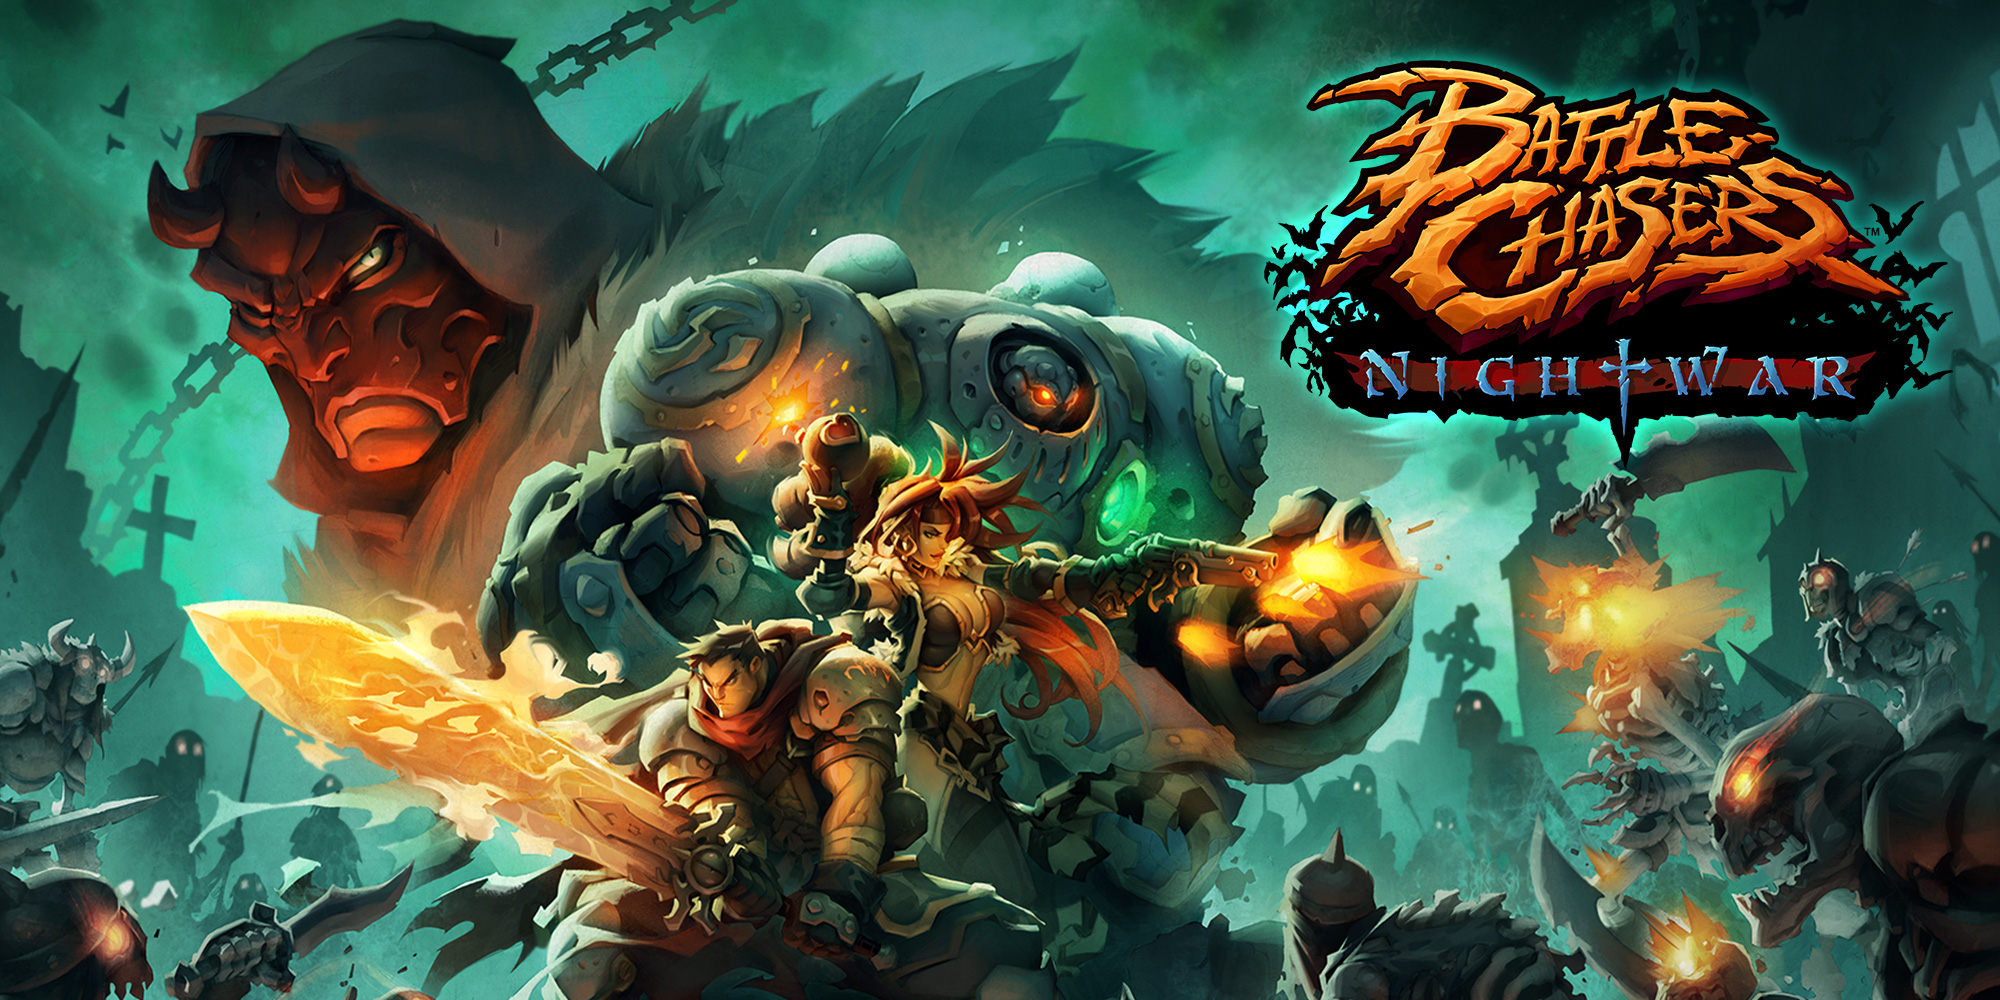 Interview: From comics to Nintendo Switch RPG with Battle Chasers: Nightwar